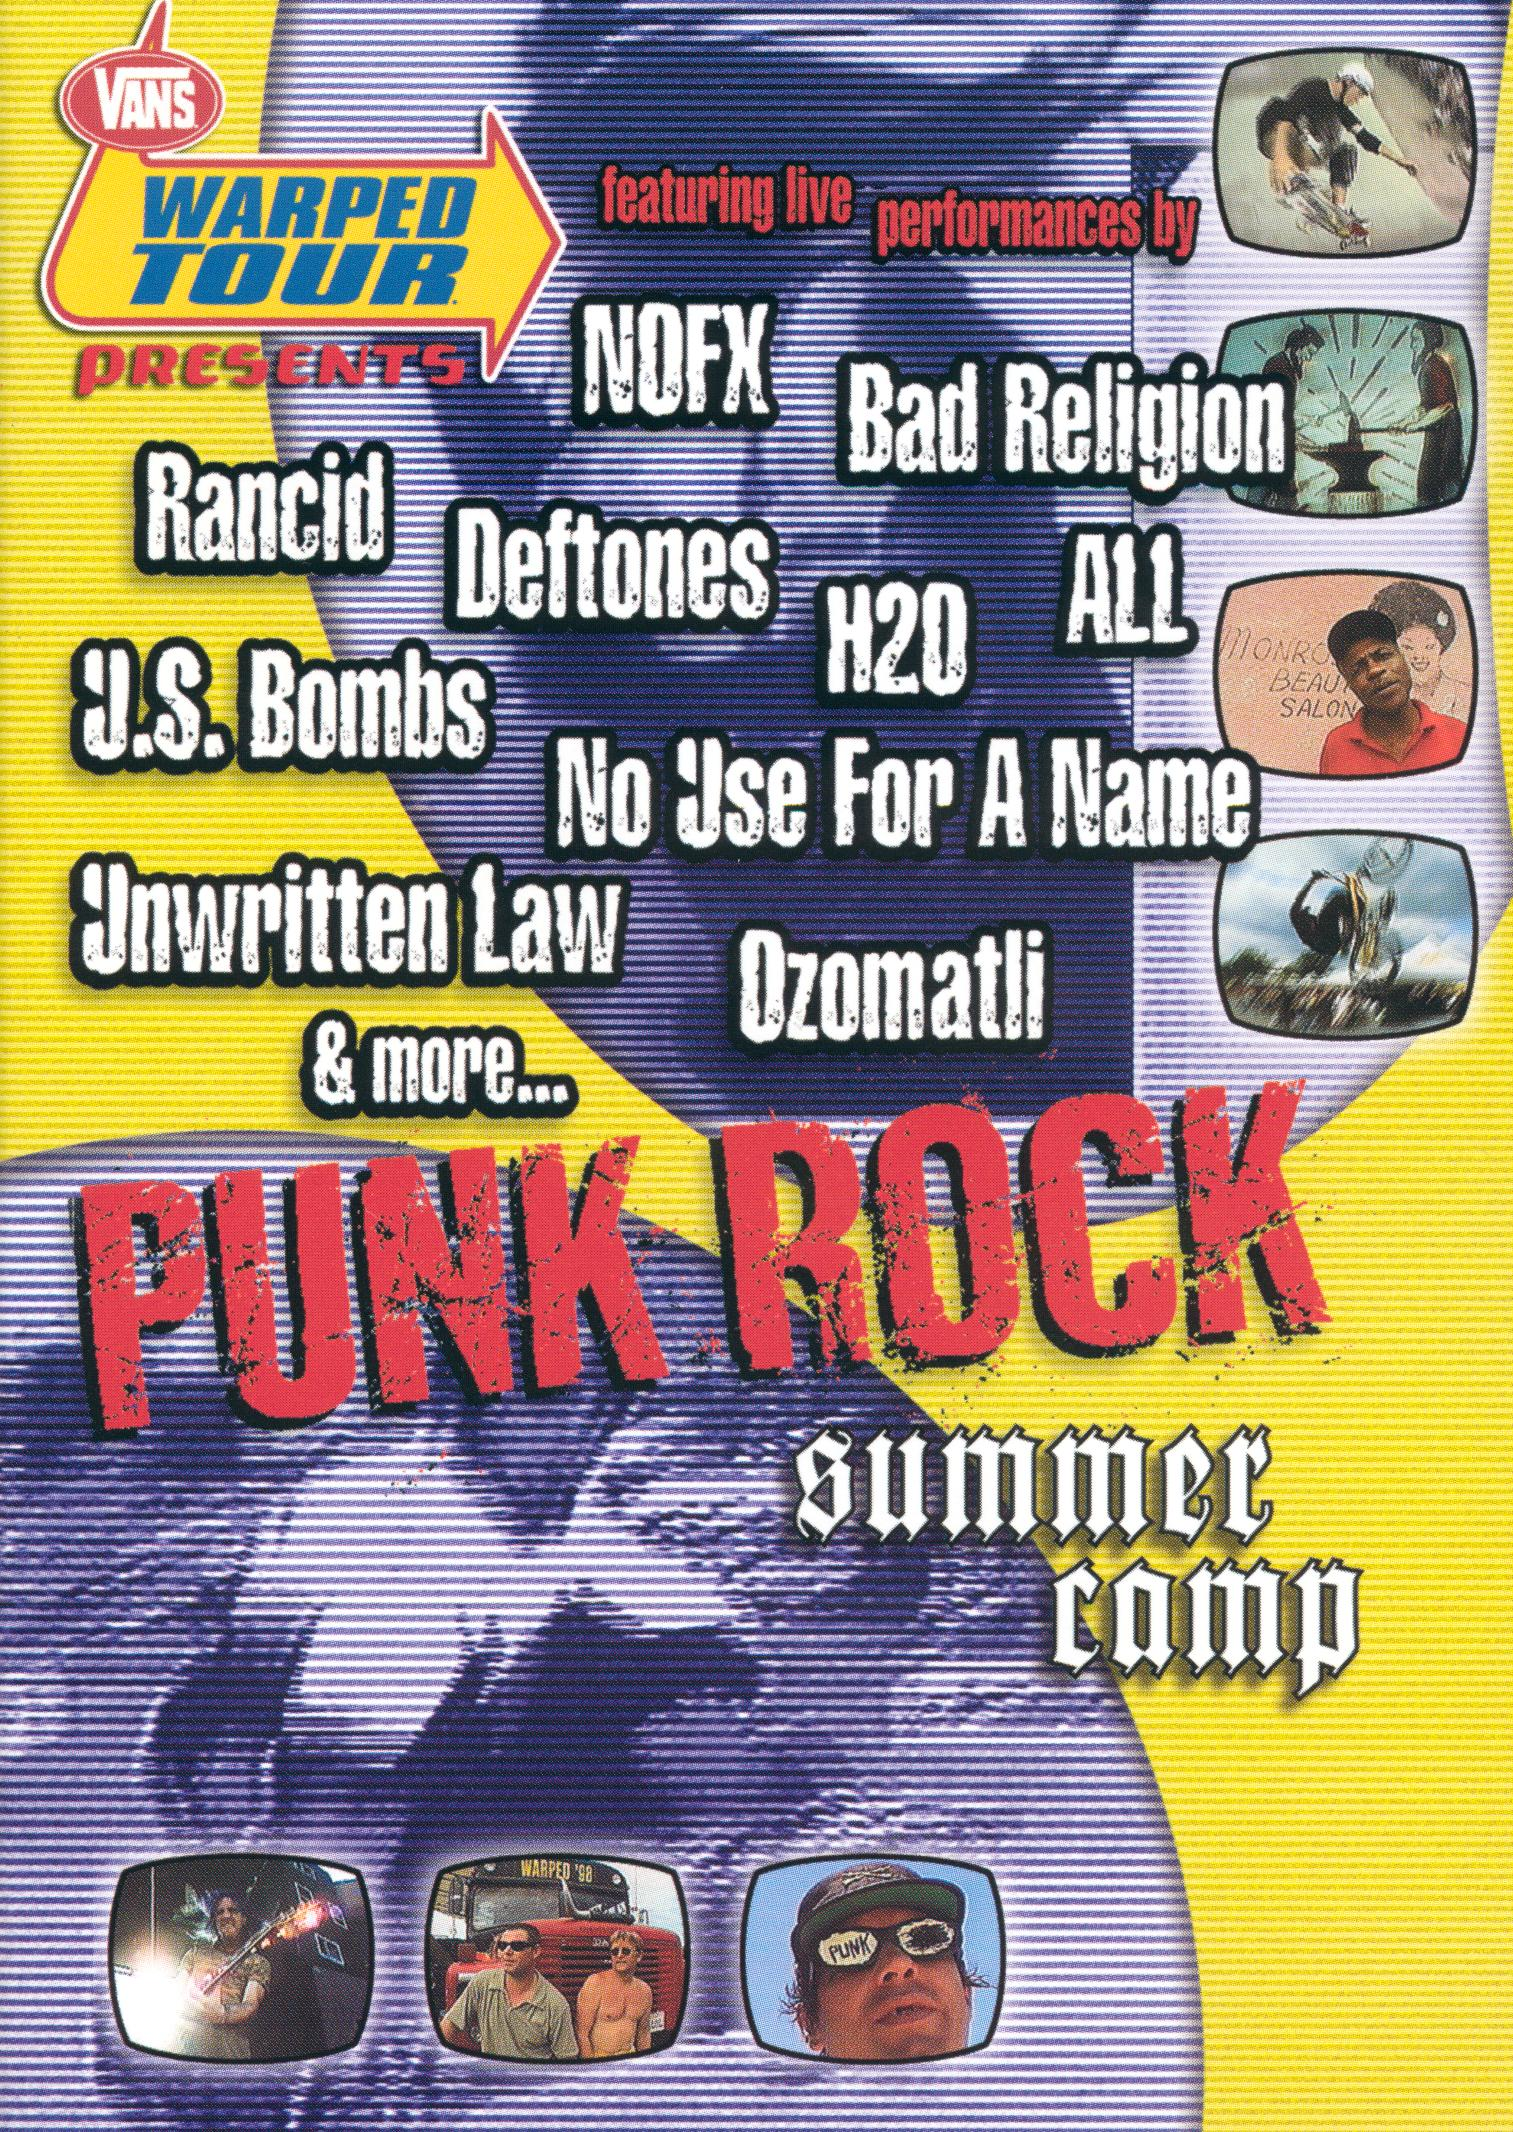 Warped Tour: Punk Rock Summer Camp